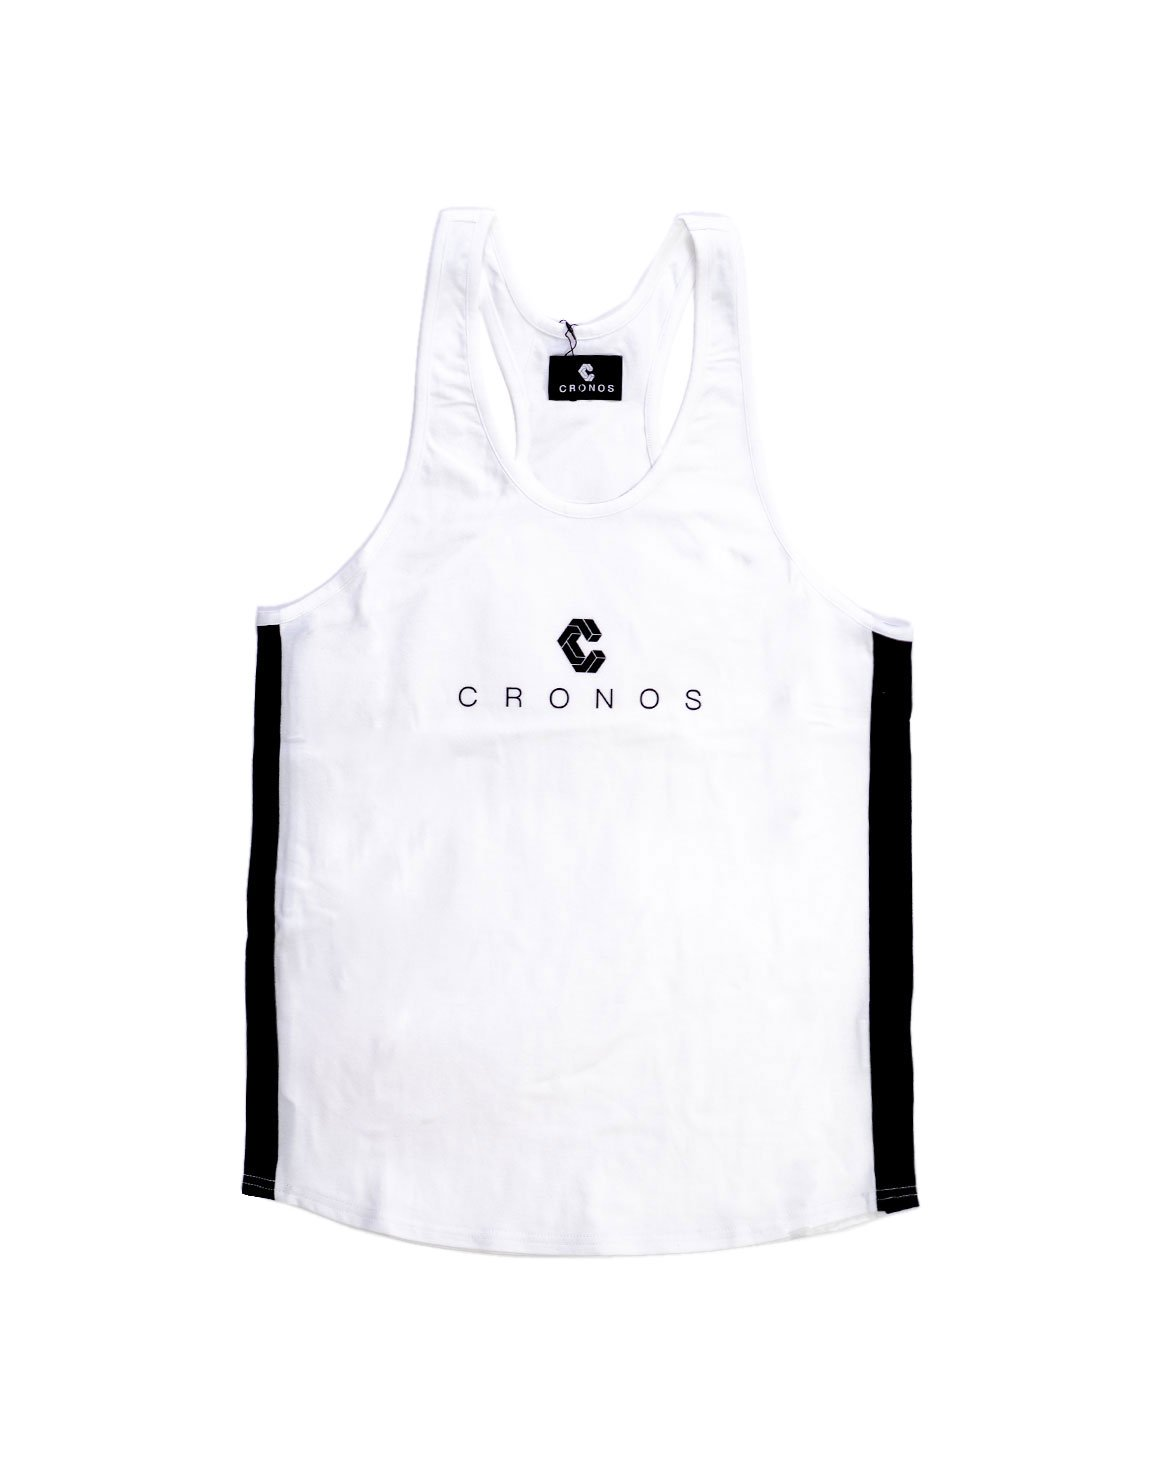 <img class='new_mark_img1' src='https://img.shop-pro.jp/img/new/icons1.gif' style='border:none;display:inline;margin:0px;padding:0px;width:auto;' />CRONOS SIDE COLOR  TANKTOP WHITE&BLACK